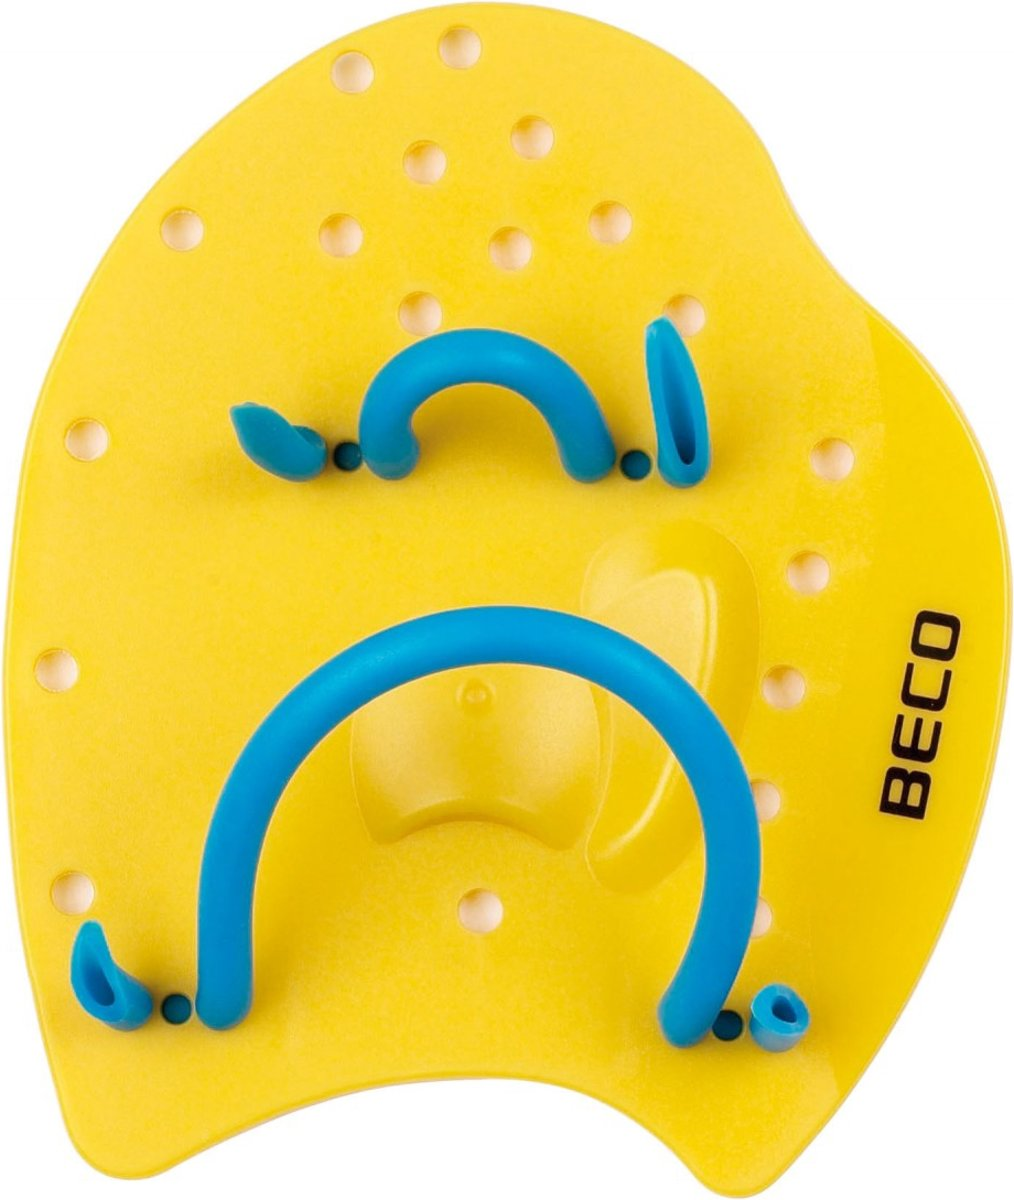 BECO Power Paddles, maat S - geel